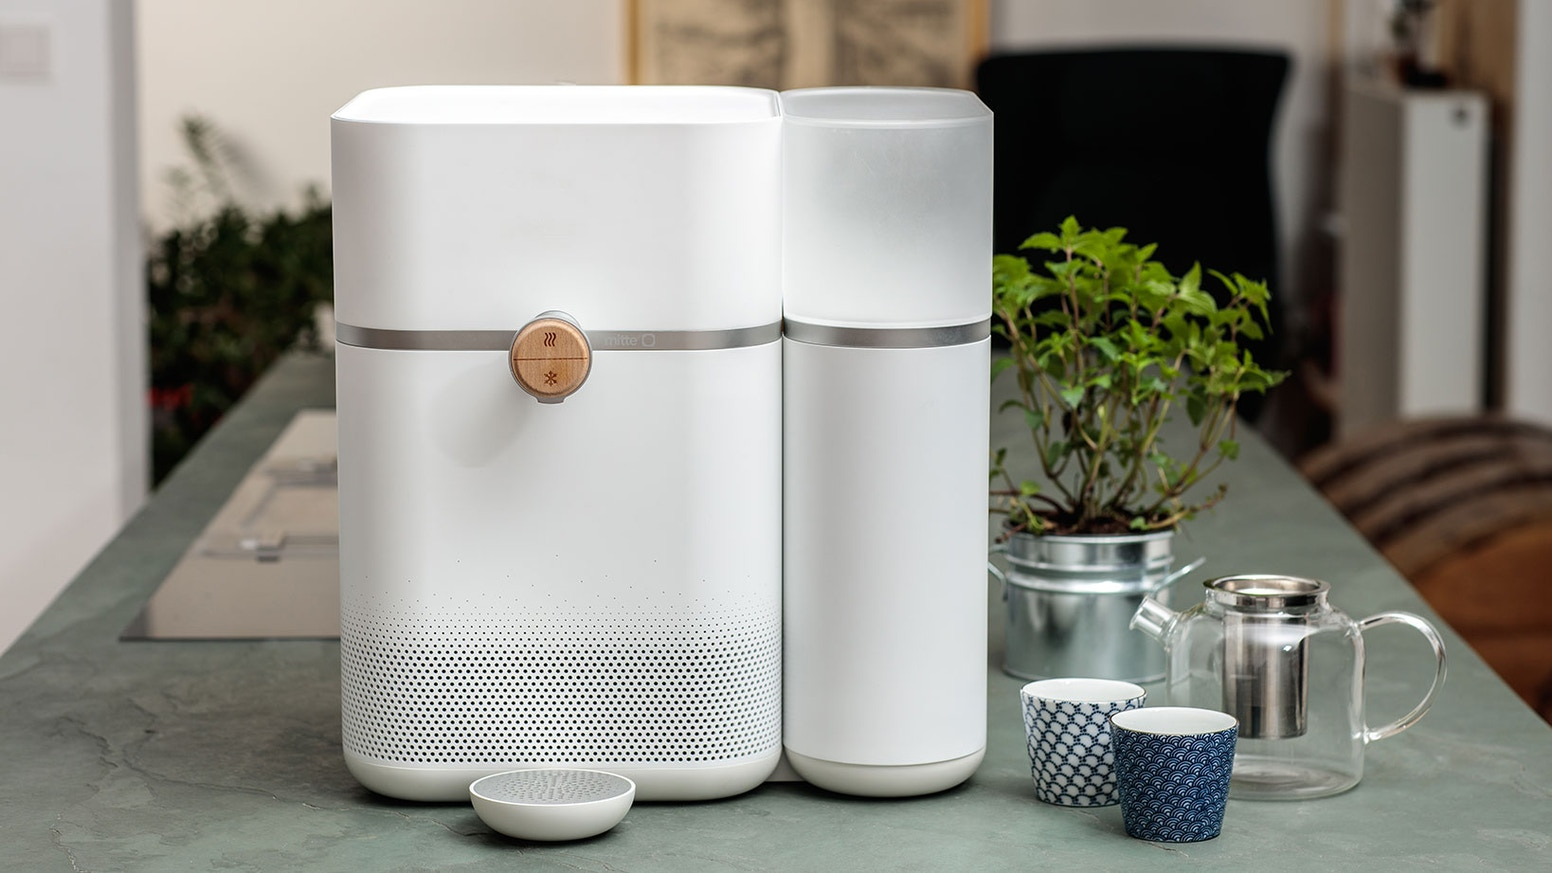 Mitte replaces bottled water with a smart home water system. Create drinking water pure and enhanced with minerals.